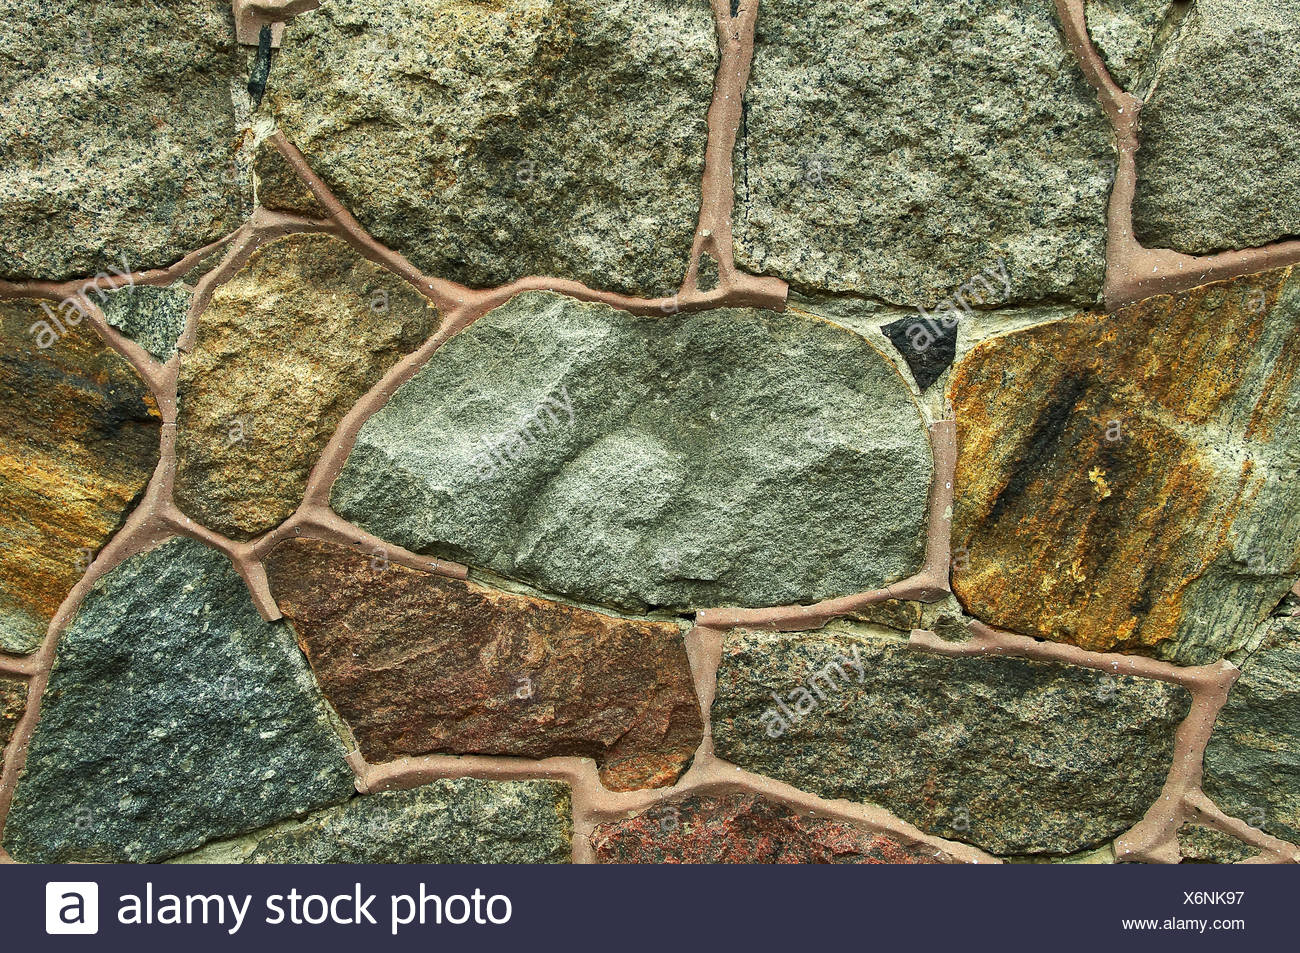 feldsteinmauer / fieldstone wall stock photo: 279529971 - alamy